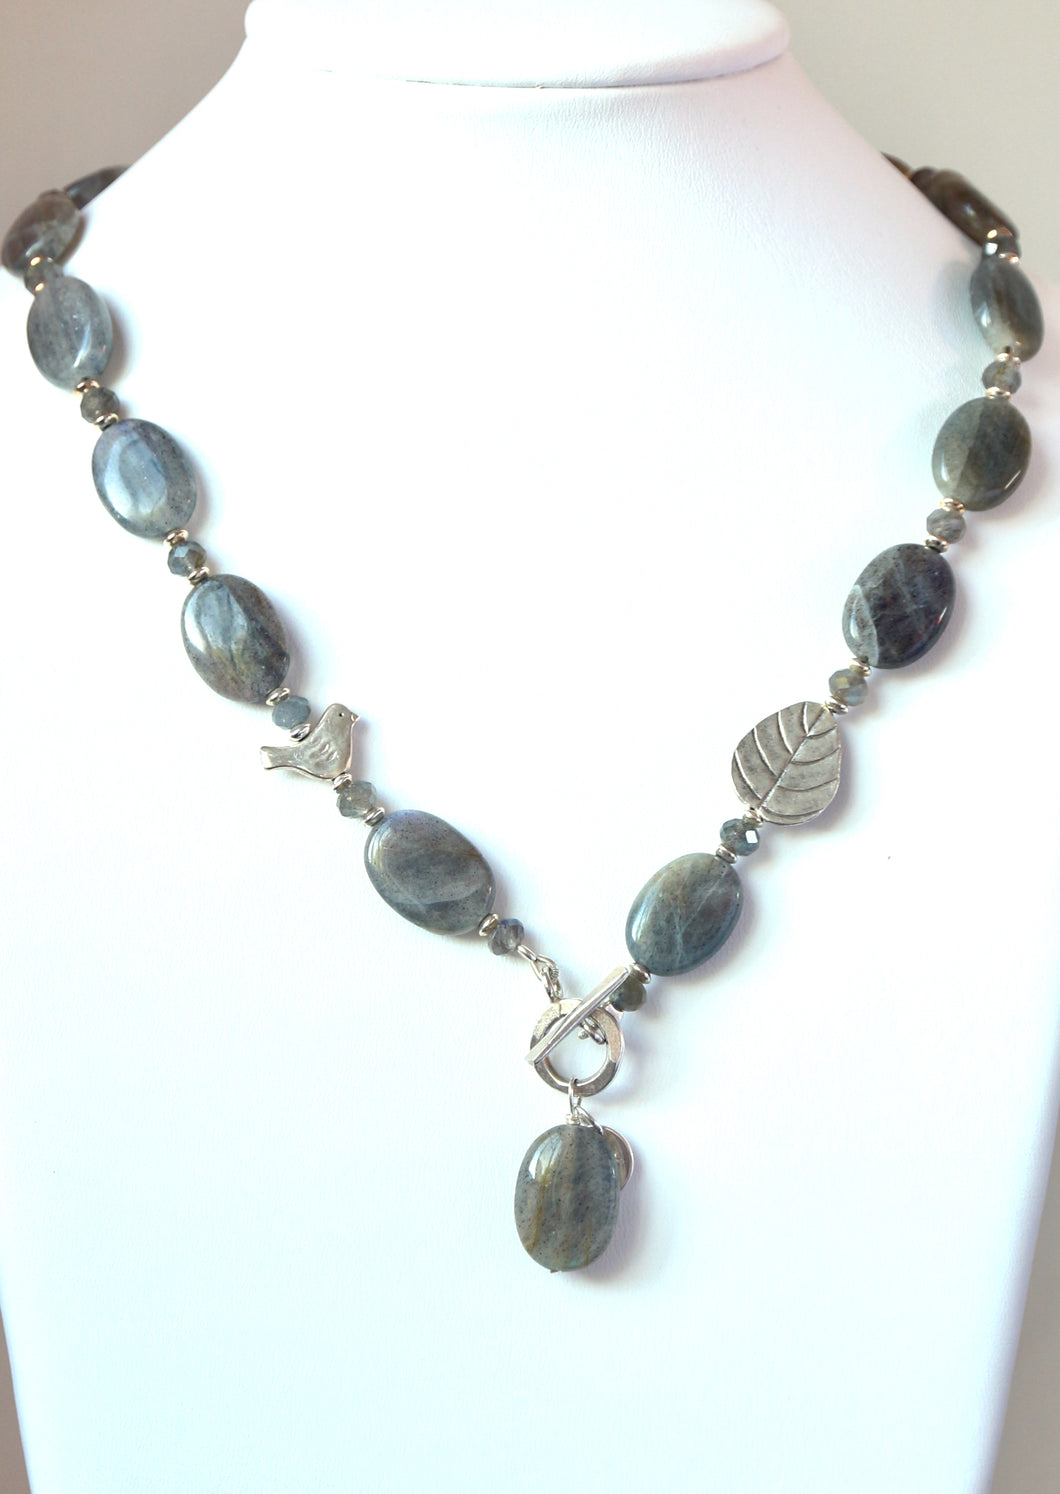 Australian Handmade Grey  Toggle Necklace with Labradorite and Sterling Silver